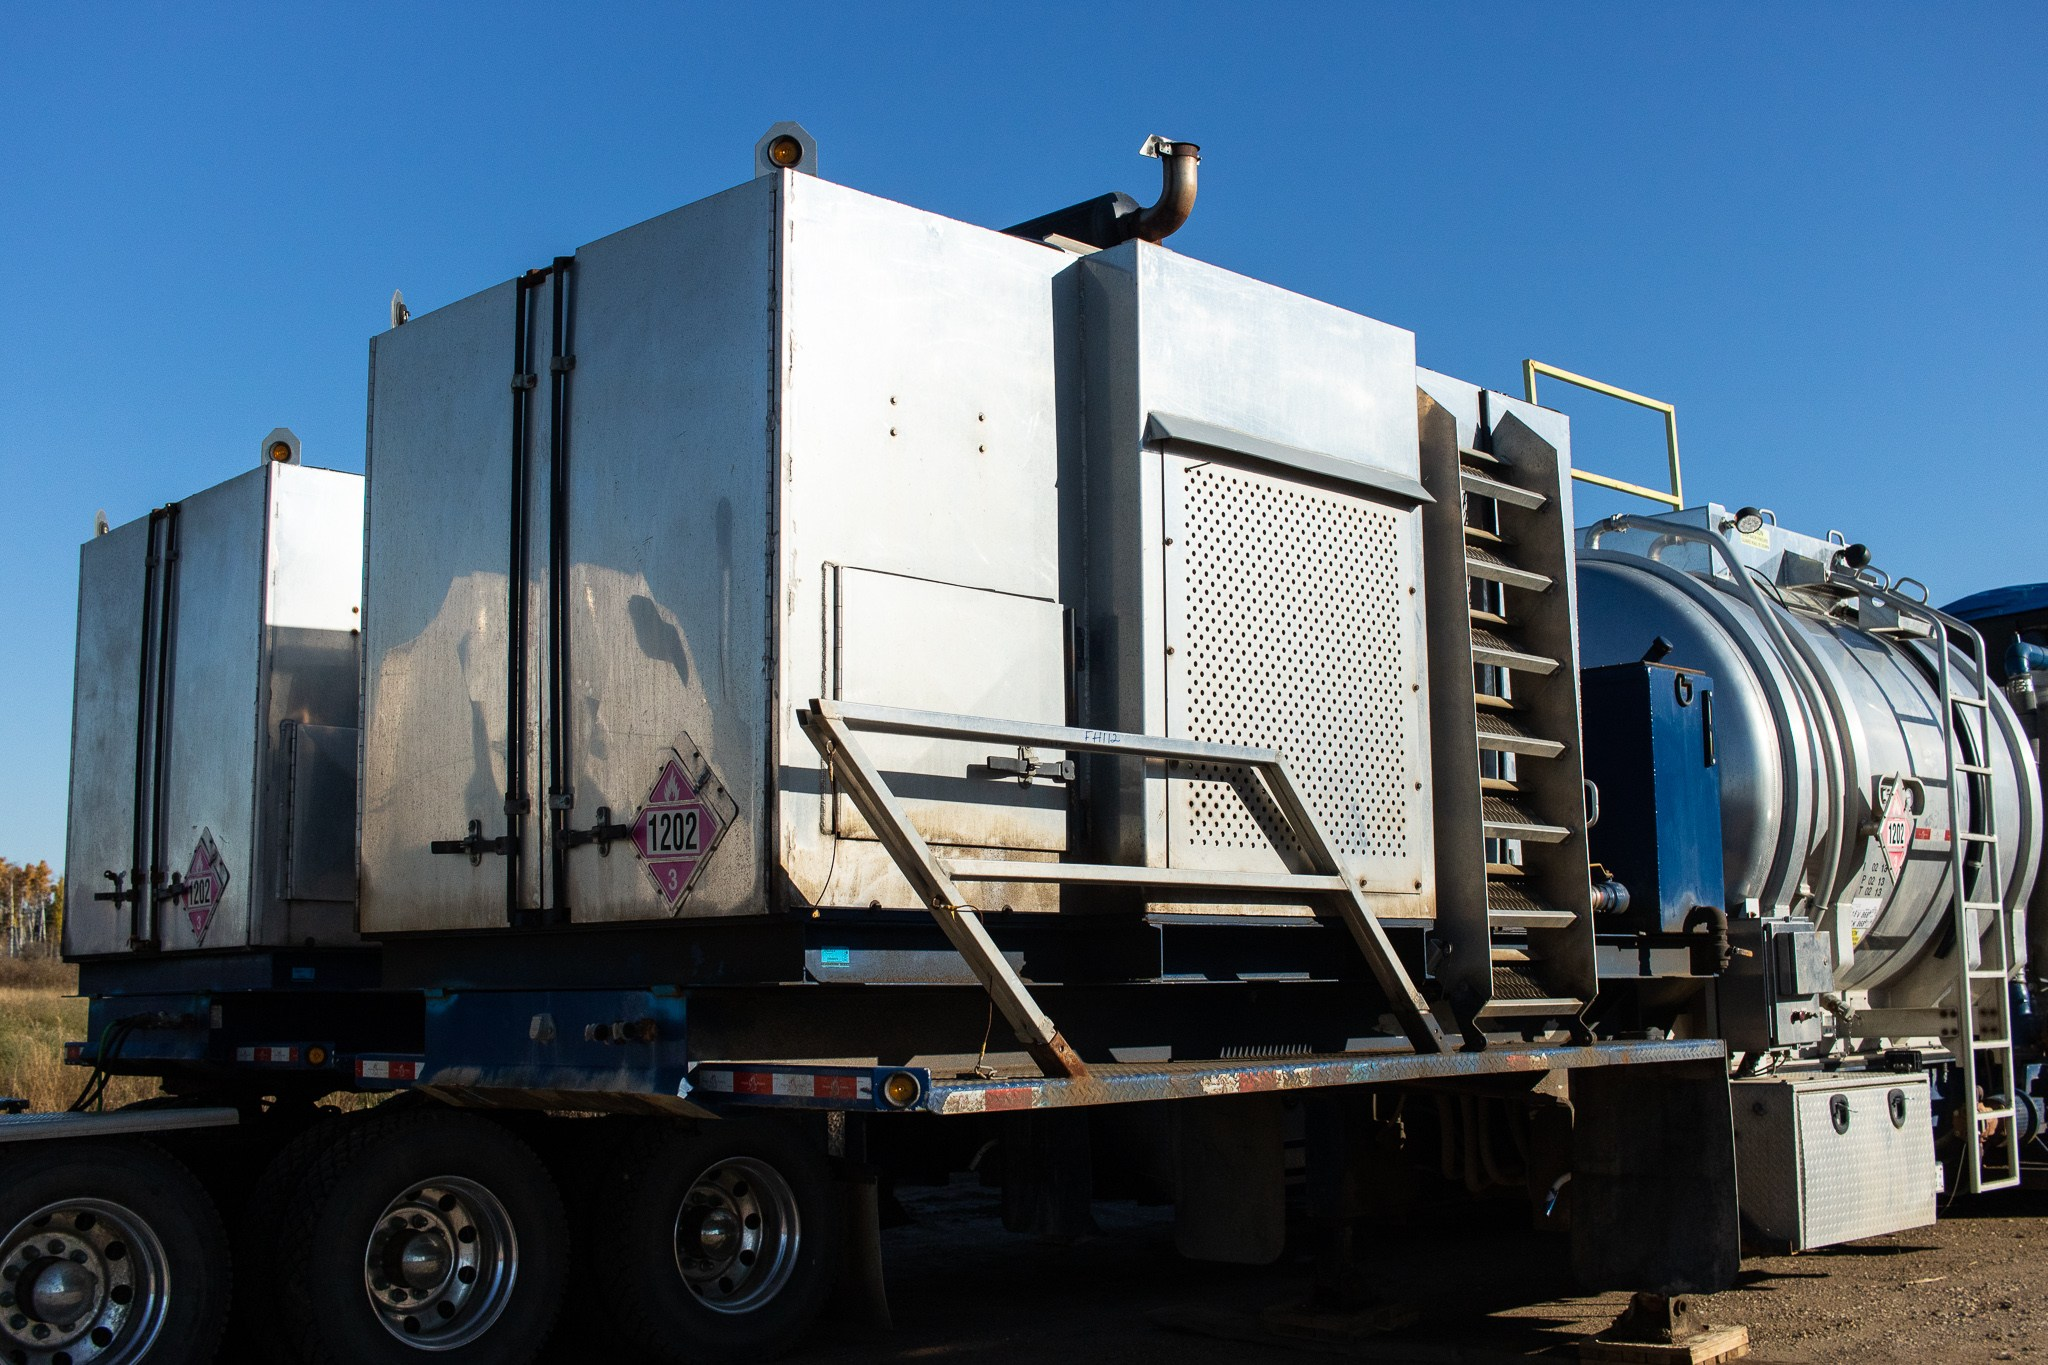 New and Used 38 MMBTU Fracking / Frac Water Heaters for sale in Calgary Alberta Canada surplus, used, new frac equipment fracking equipment oilfield energy oil and gas 5